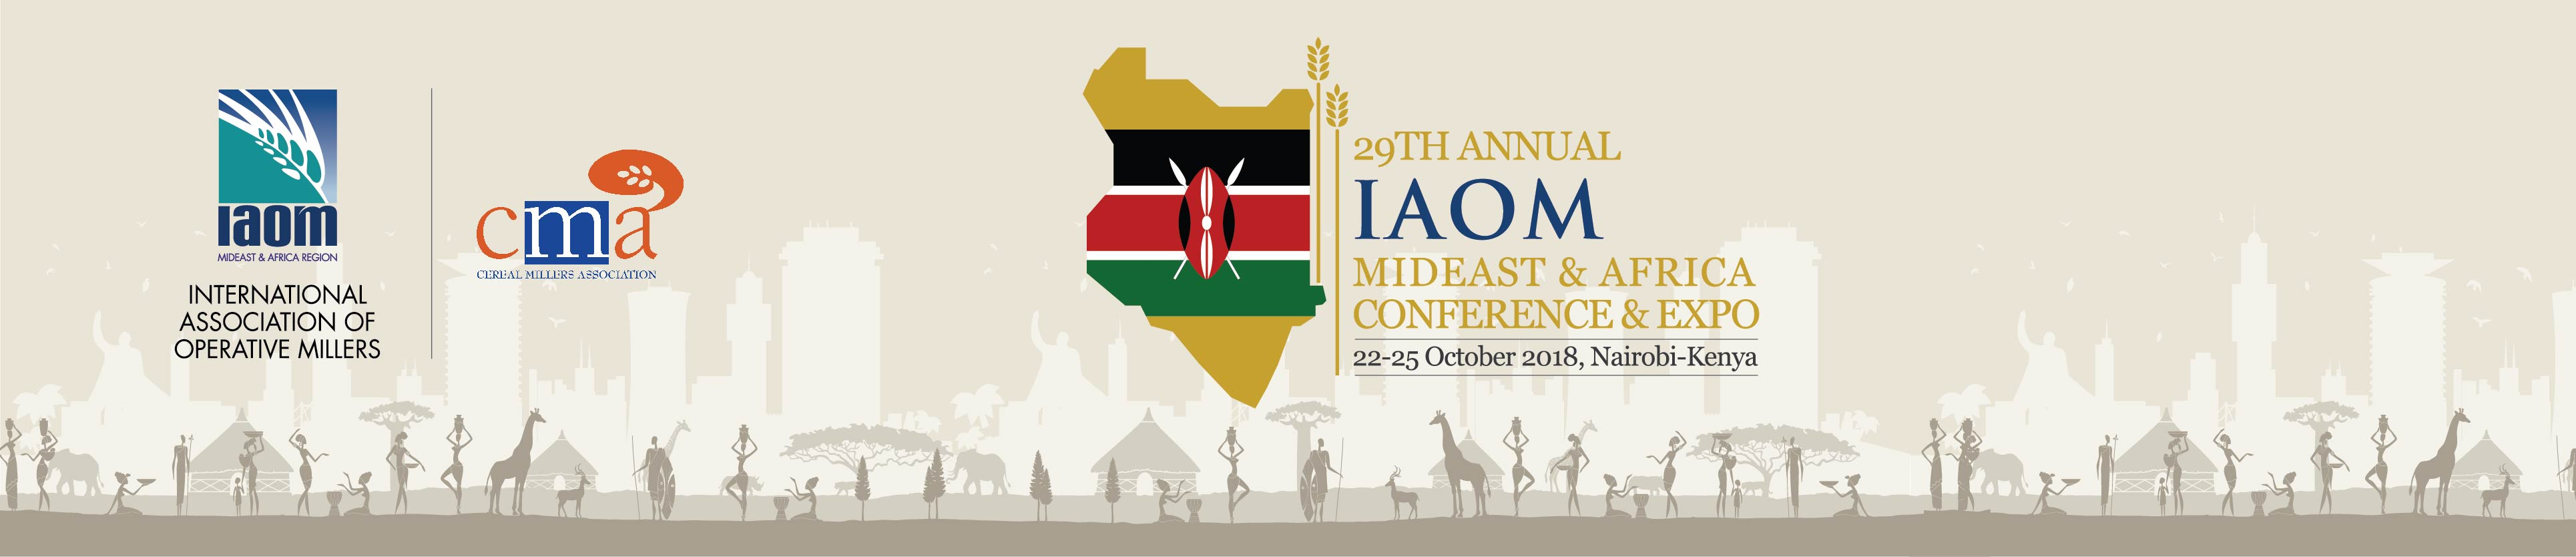 29th Annual IAOM Mideast & Africa Region Conference & Expo